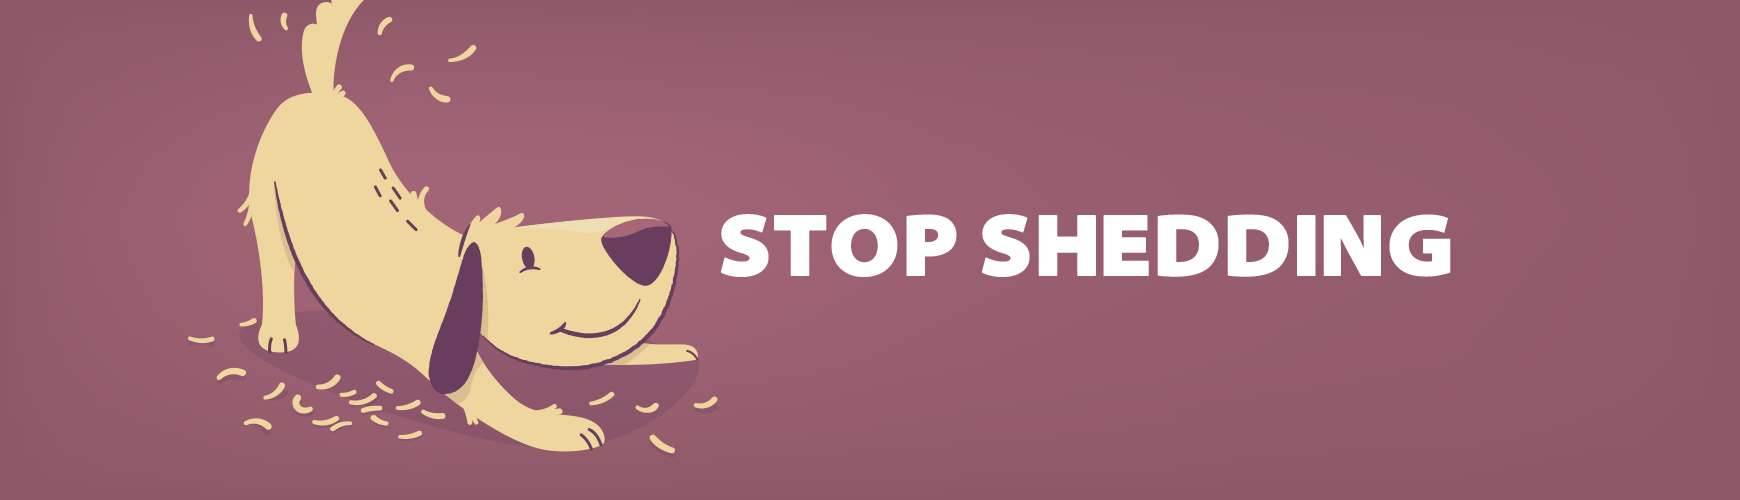 prevent tips dogs sheds hair away food keep in to shedding reduce on how dog and